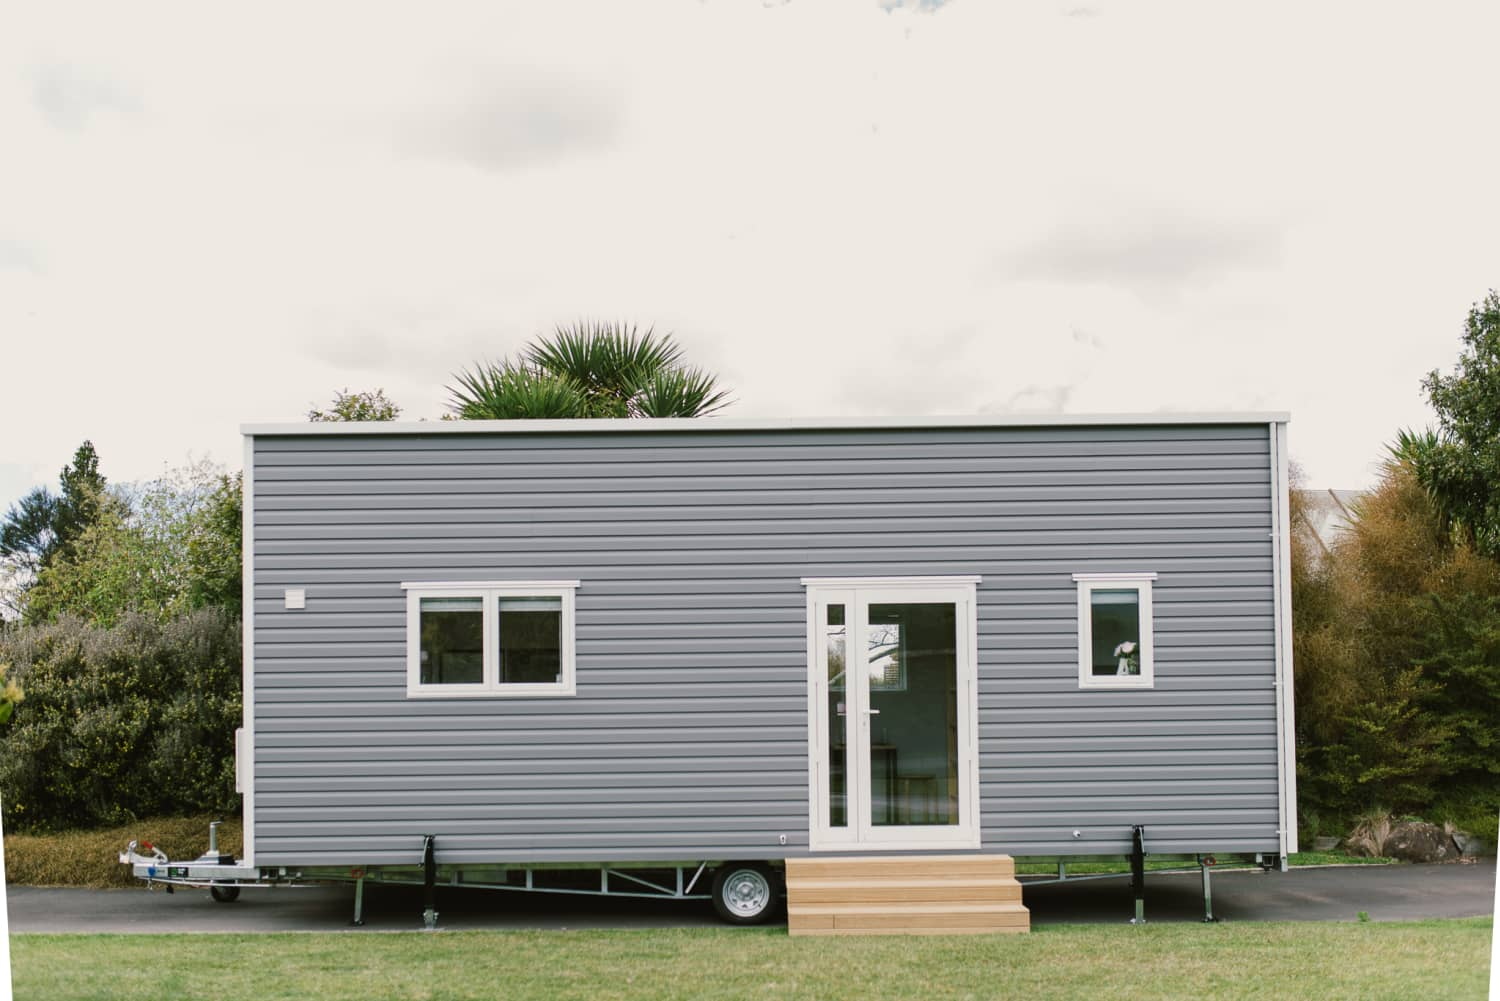 This Tiny House Sleeps Up to 6 People